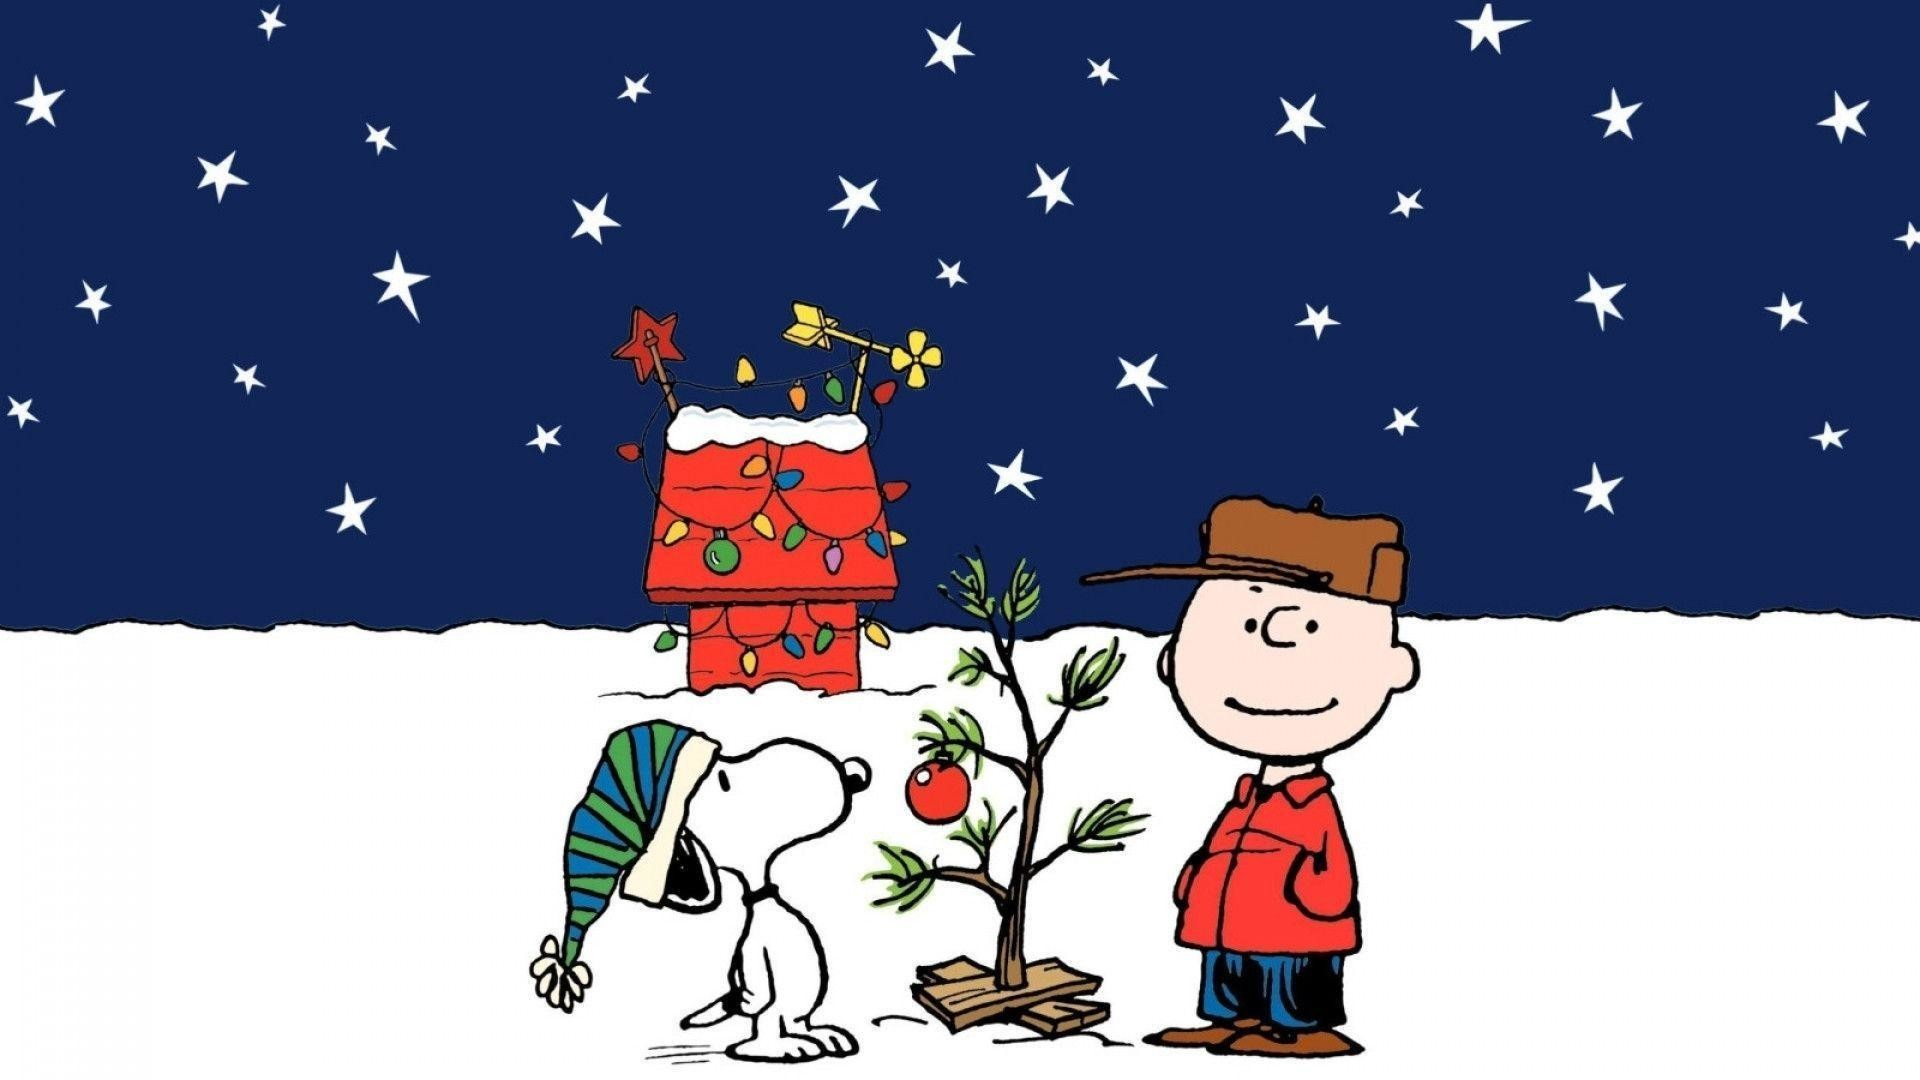 Snoopy Christmas Backgrounds (49+ images)